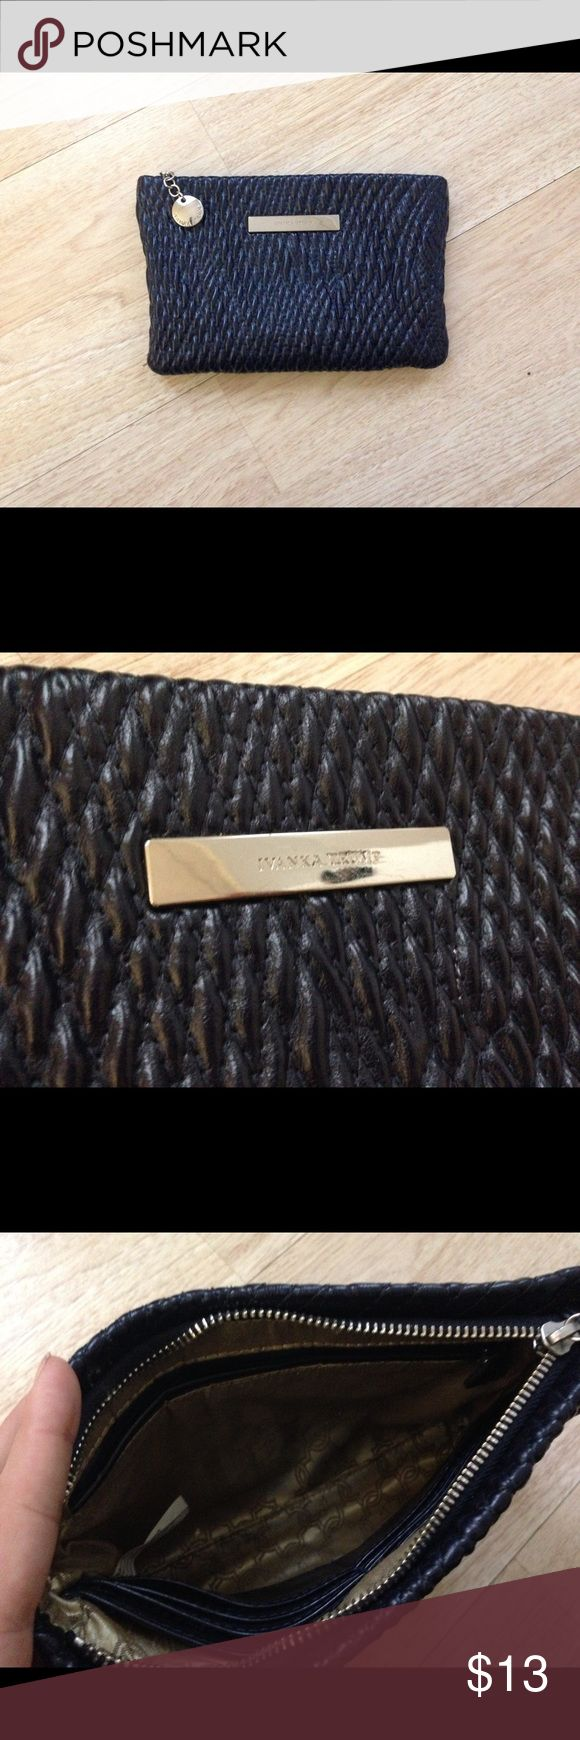 Ivanka trump dark navy clutch Cute patterned dark navy blue clutch by ivanka trump it's in great condition, just has a few small scratches on the name plate . Ivanka Trump Bags Clutches & Wristlets